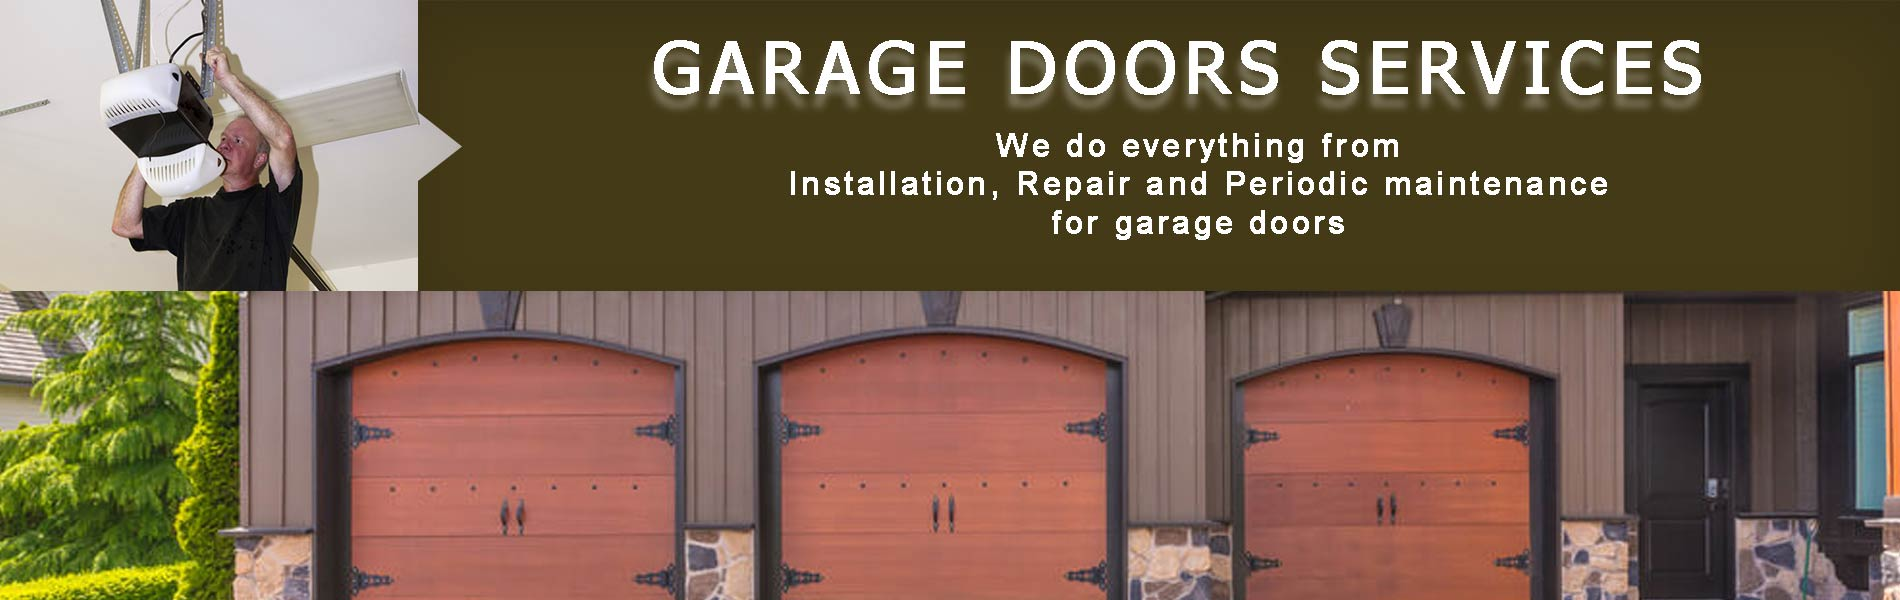 United Garage Door Service Mesa, AZ 888-703-5604